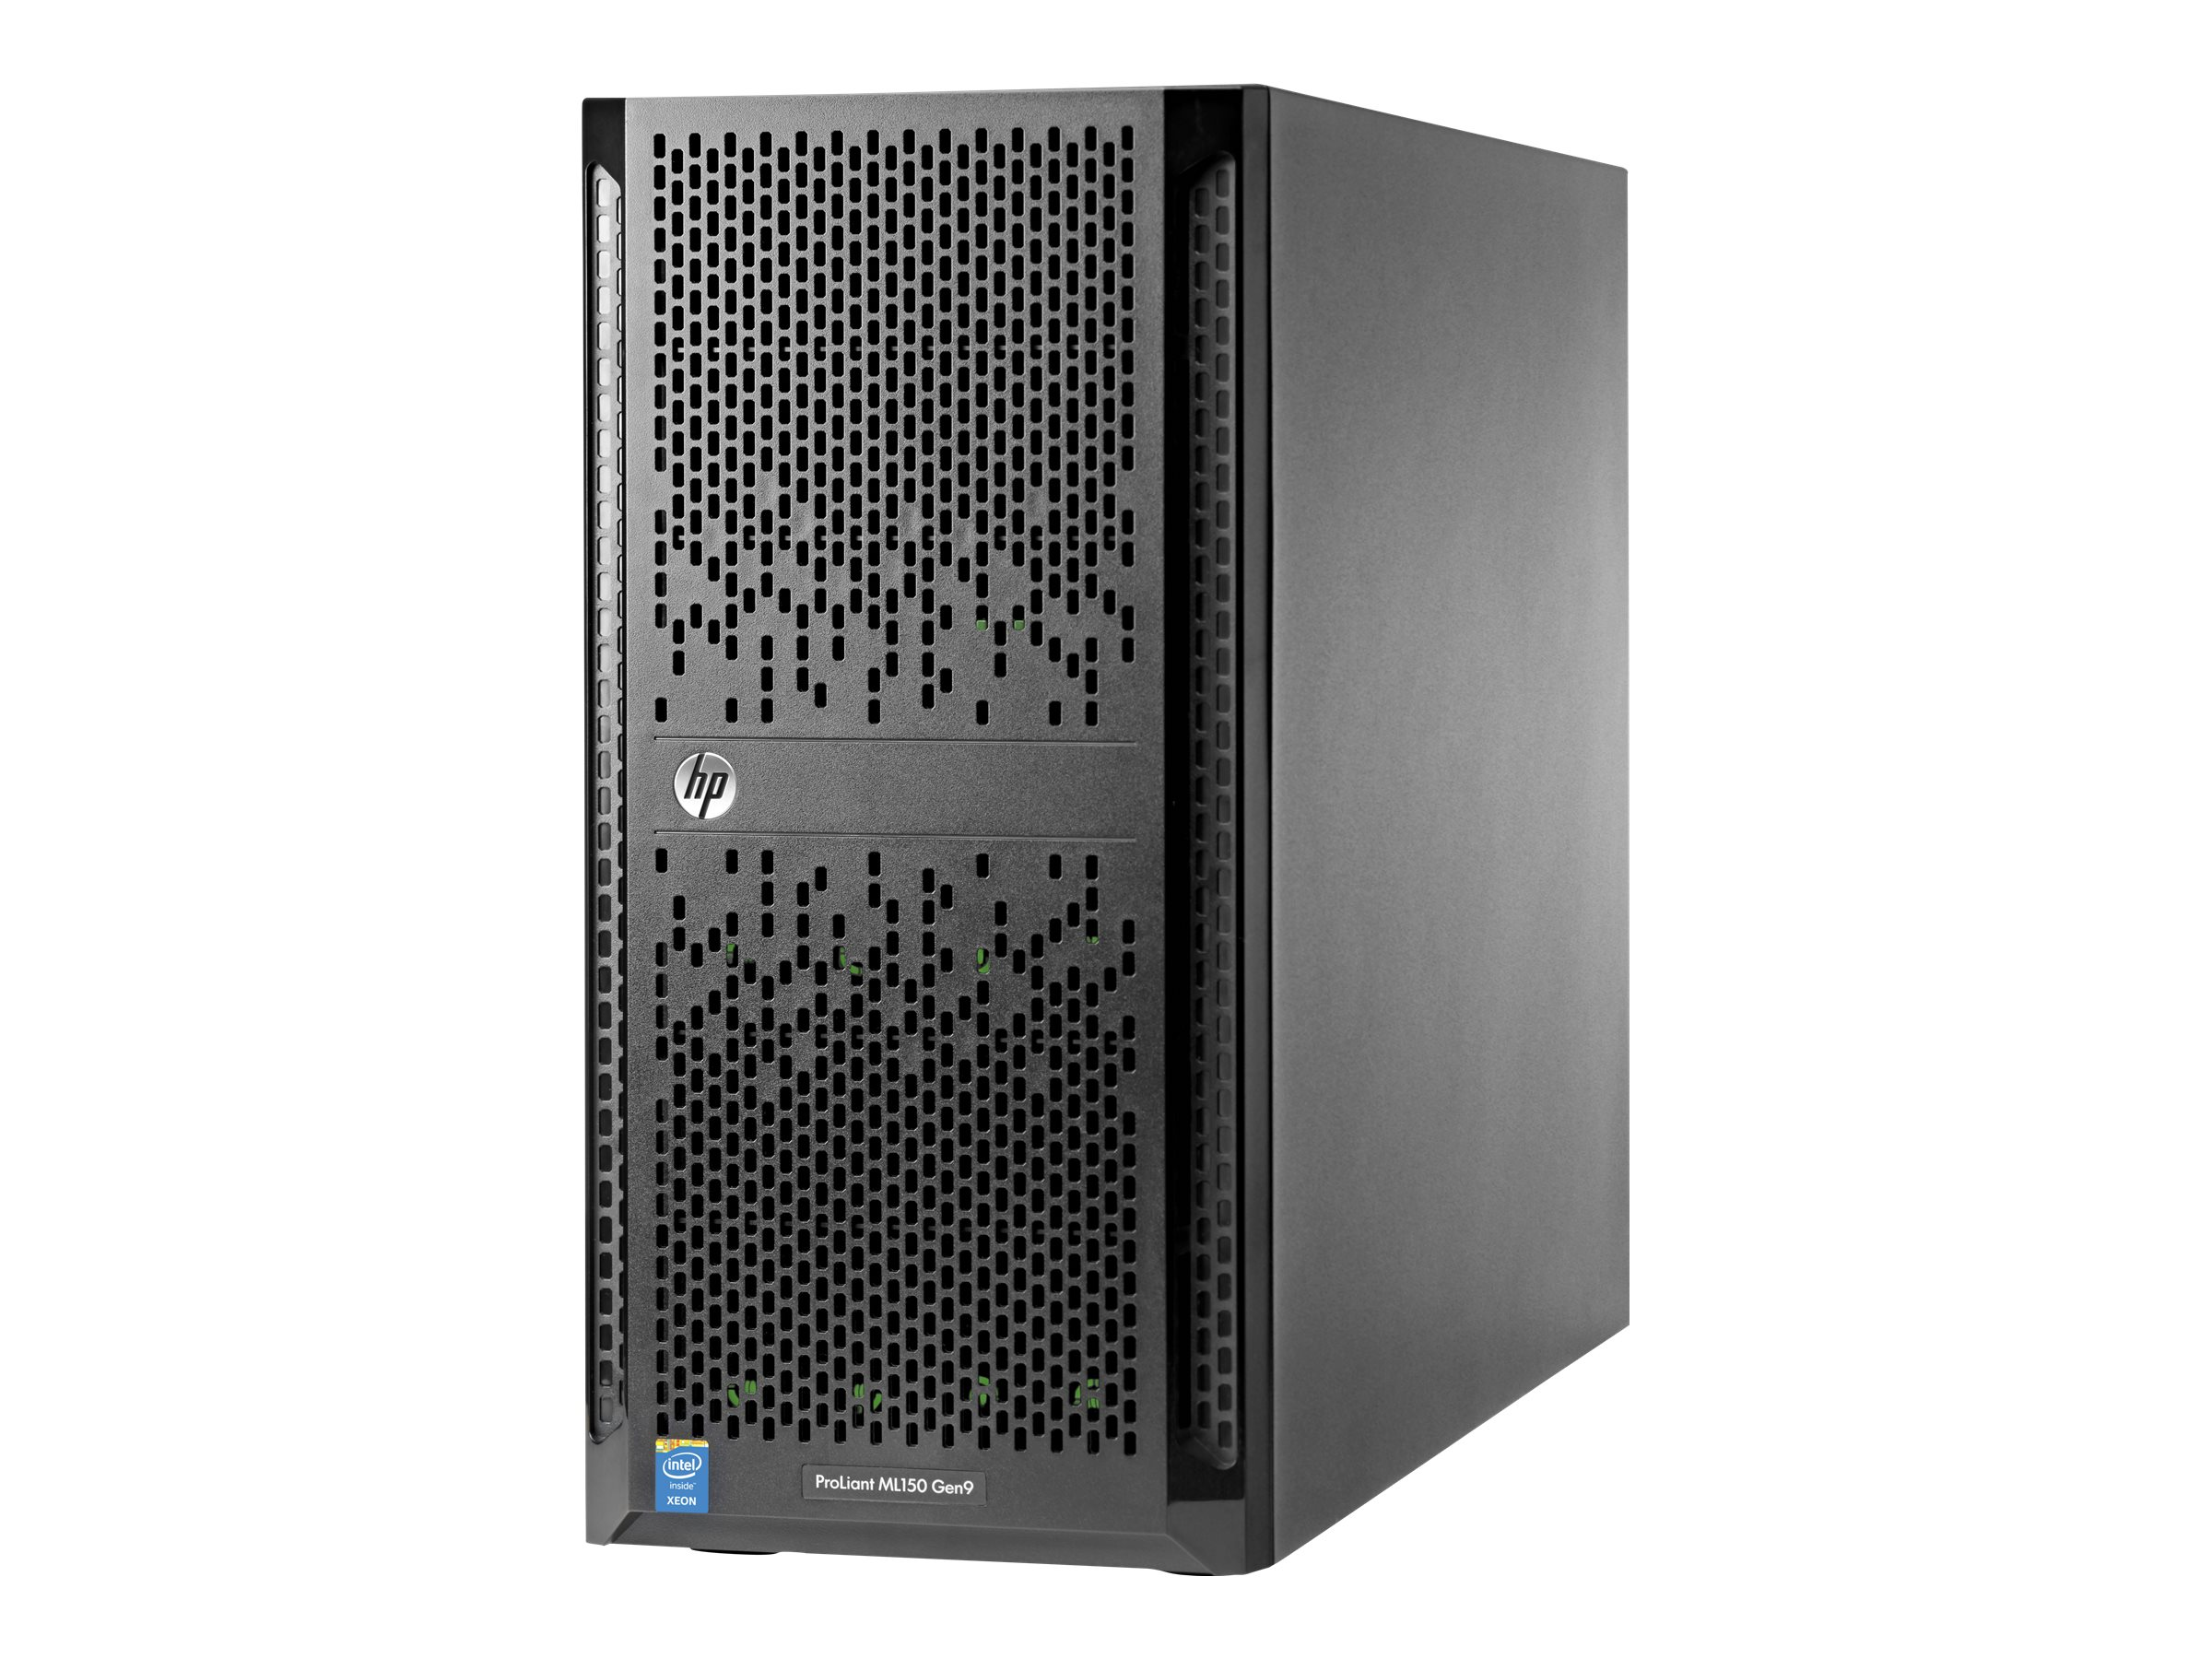 HPE Smart Buy ProLiant ML150 Gen9 Intel 2.4GHz Xeon, 780853-S01, 18155351, Servers